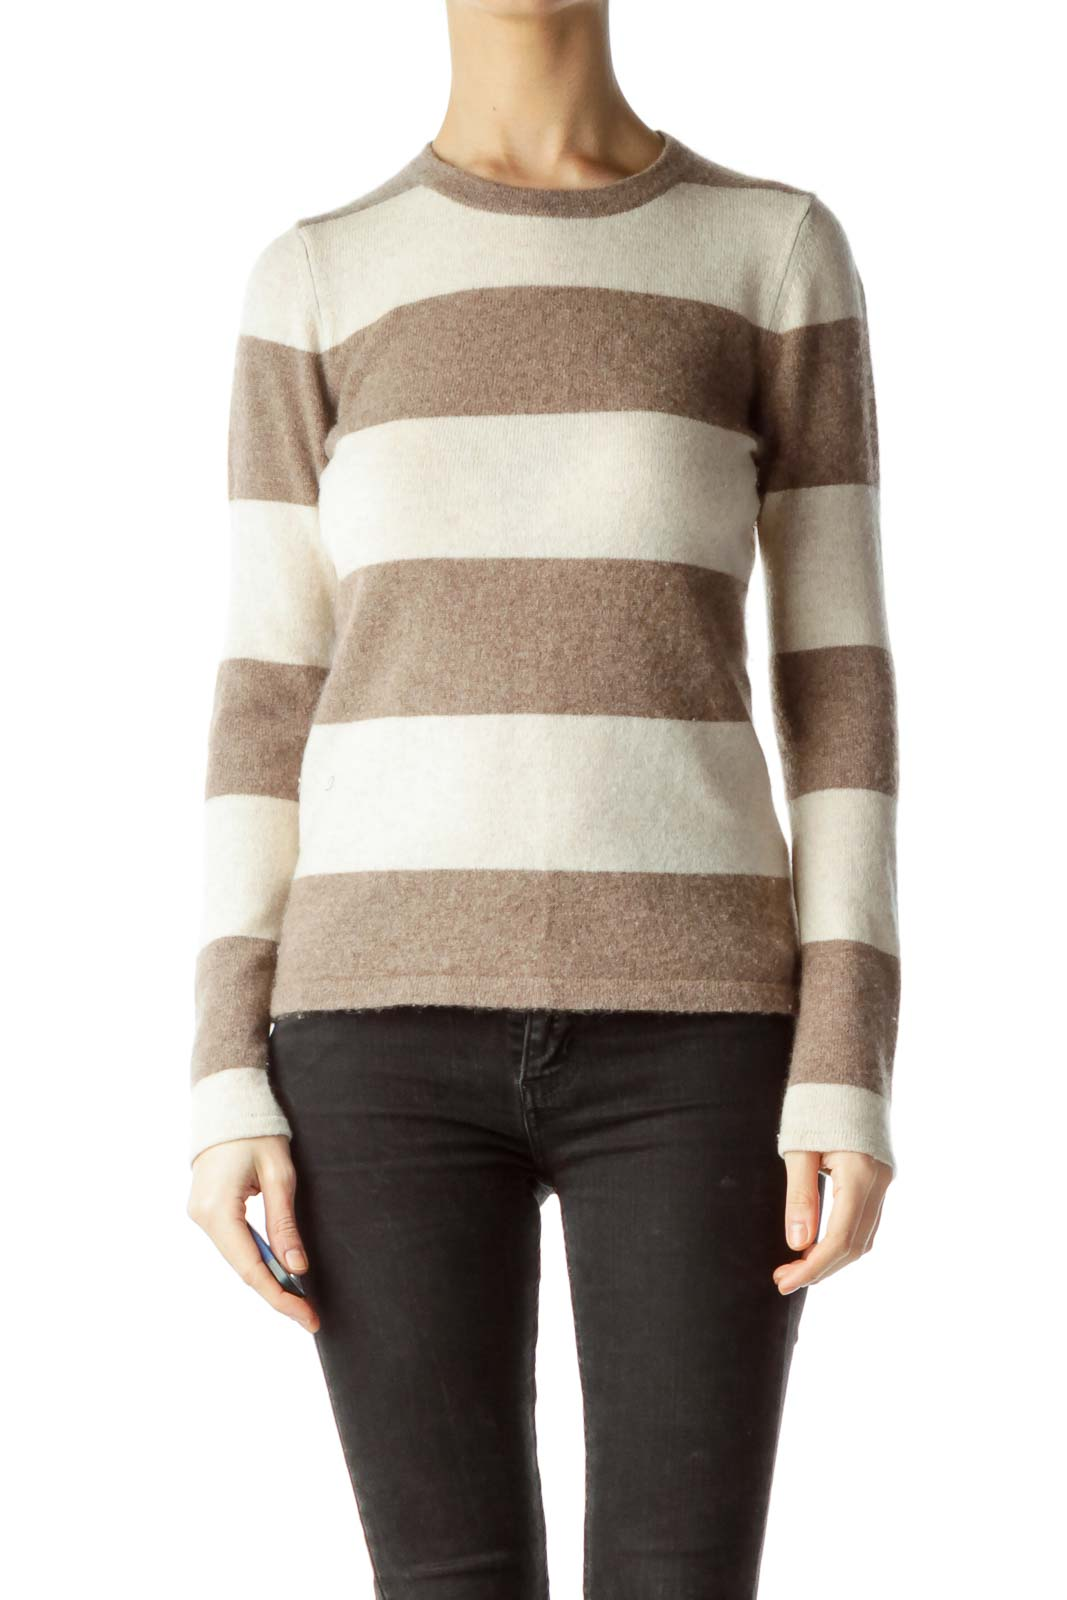 Brown Beige Striped 100% Cashmere Sweater Front